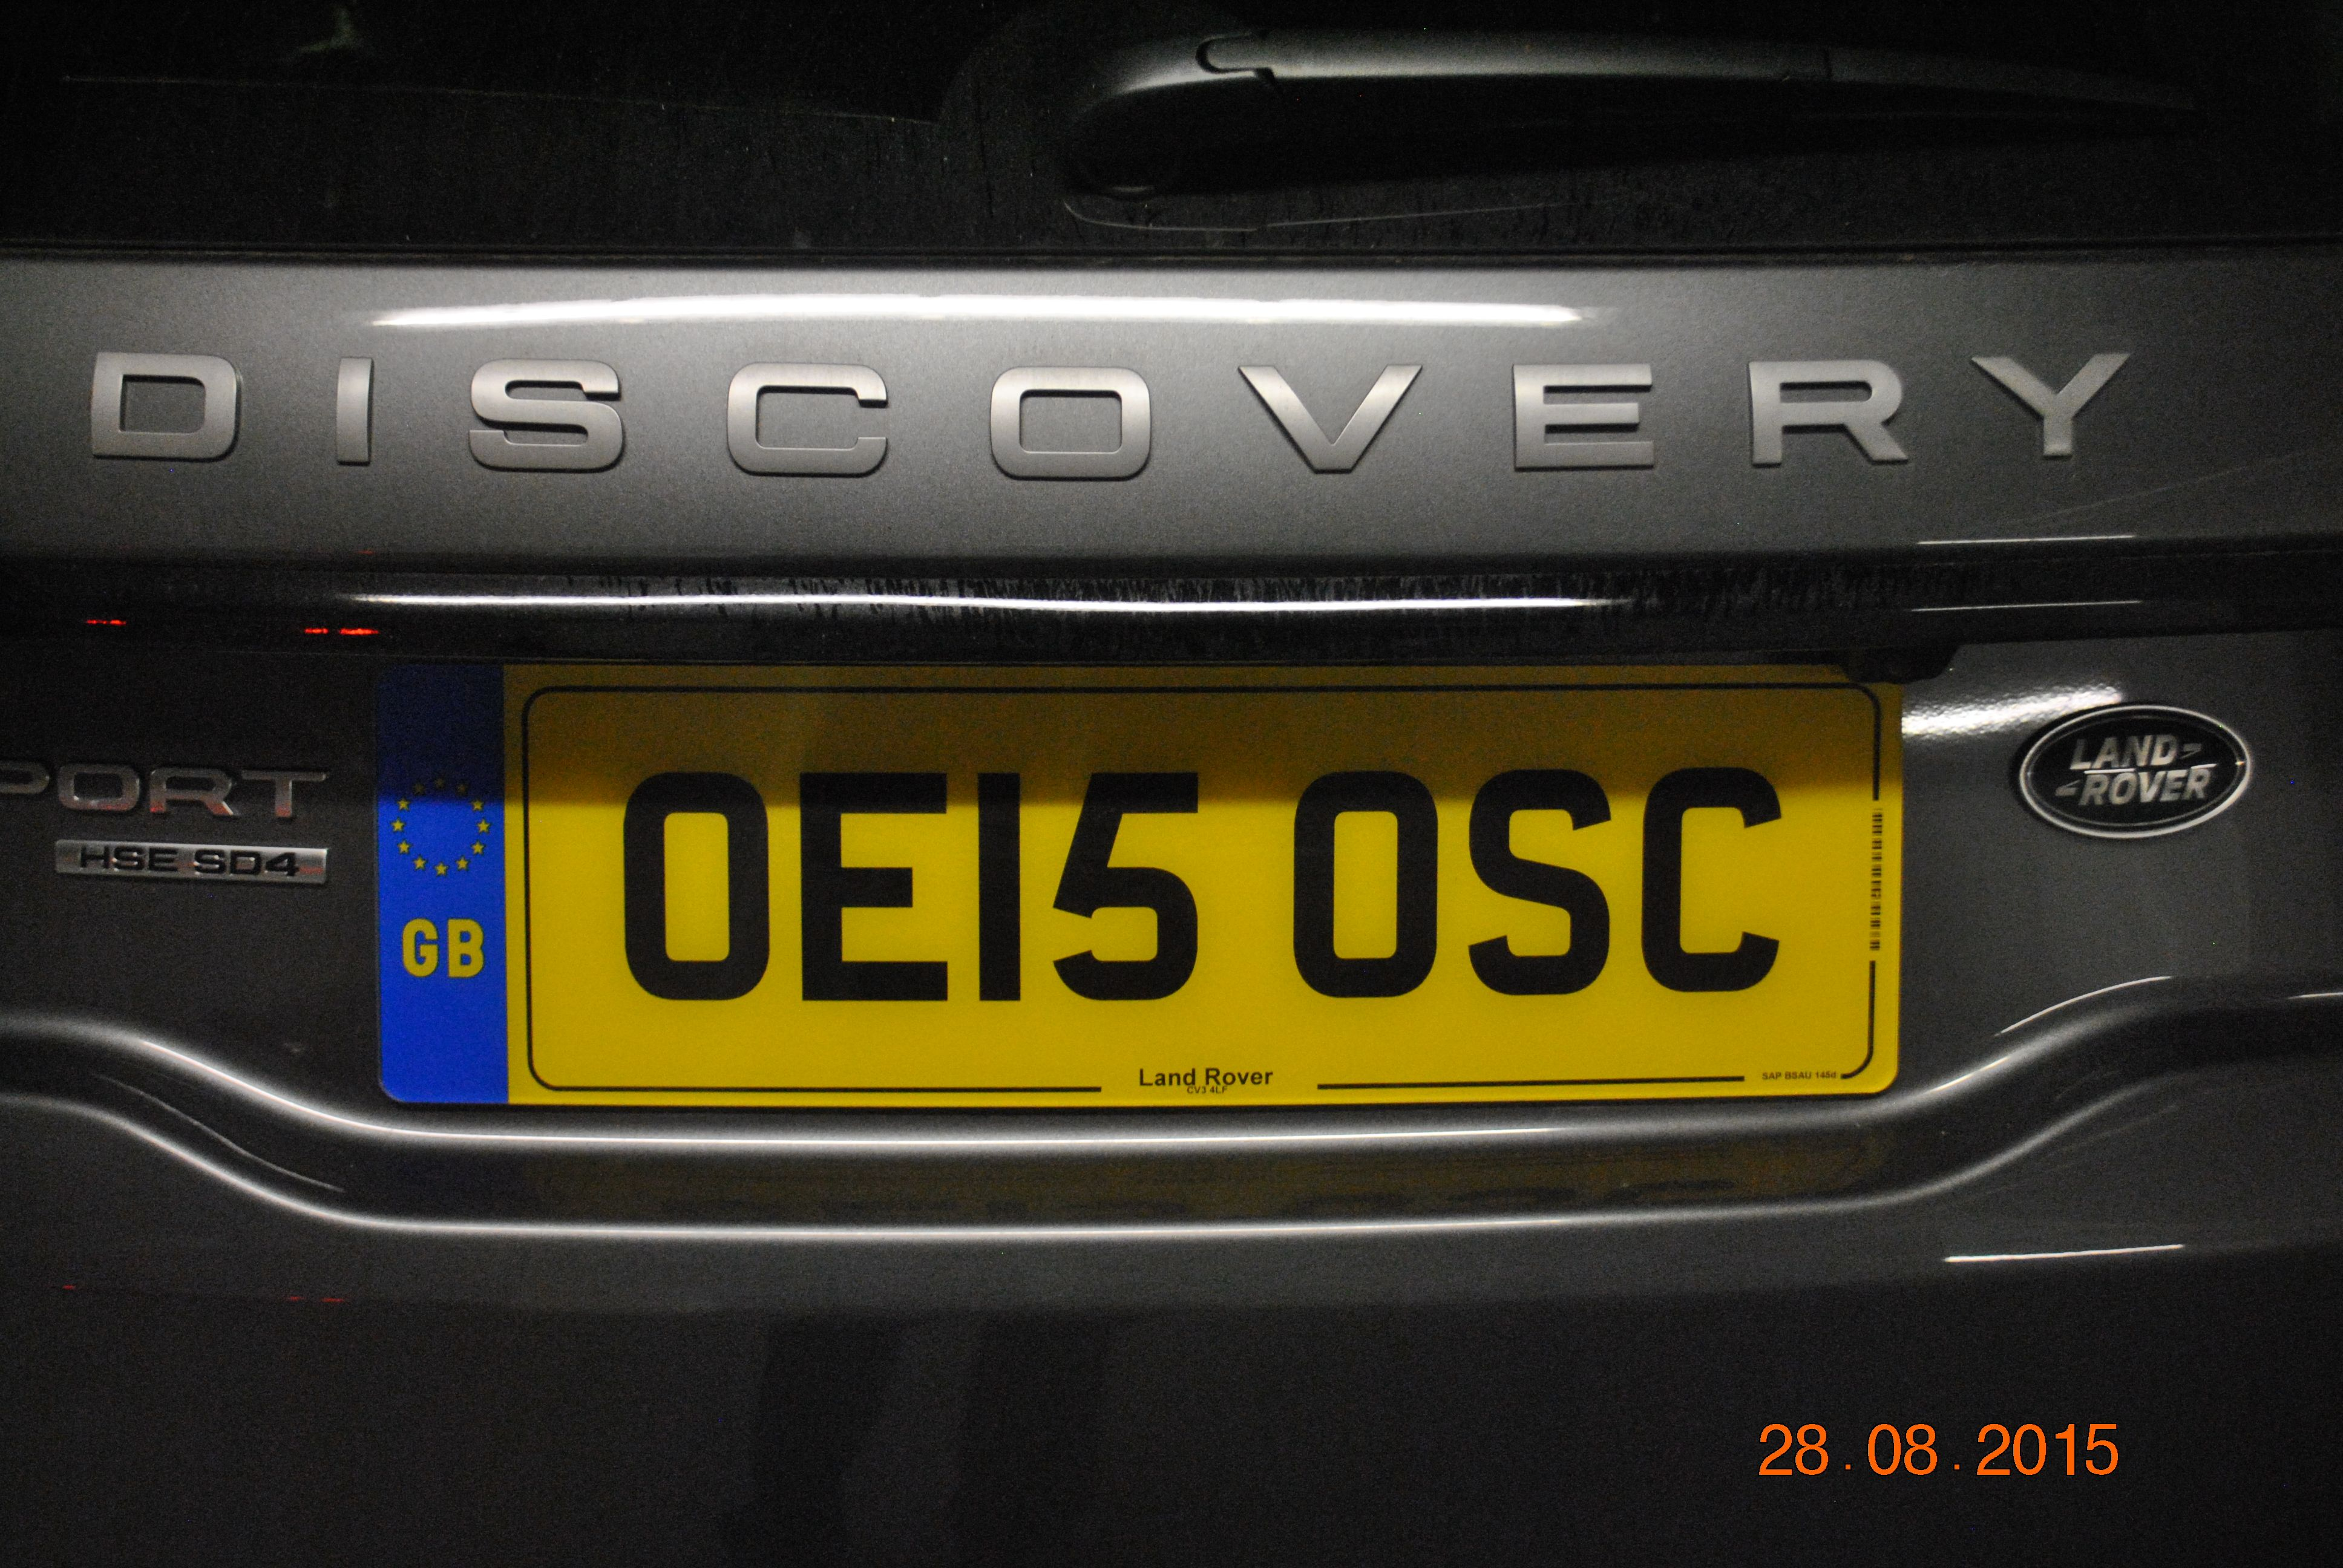 photos spy frame news new license discovery rover land dsc cars landrover future plate spied